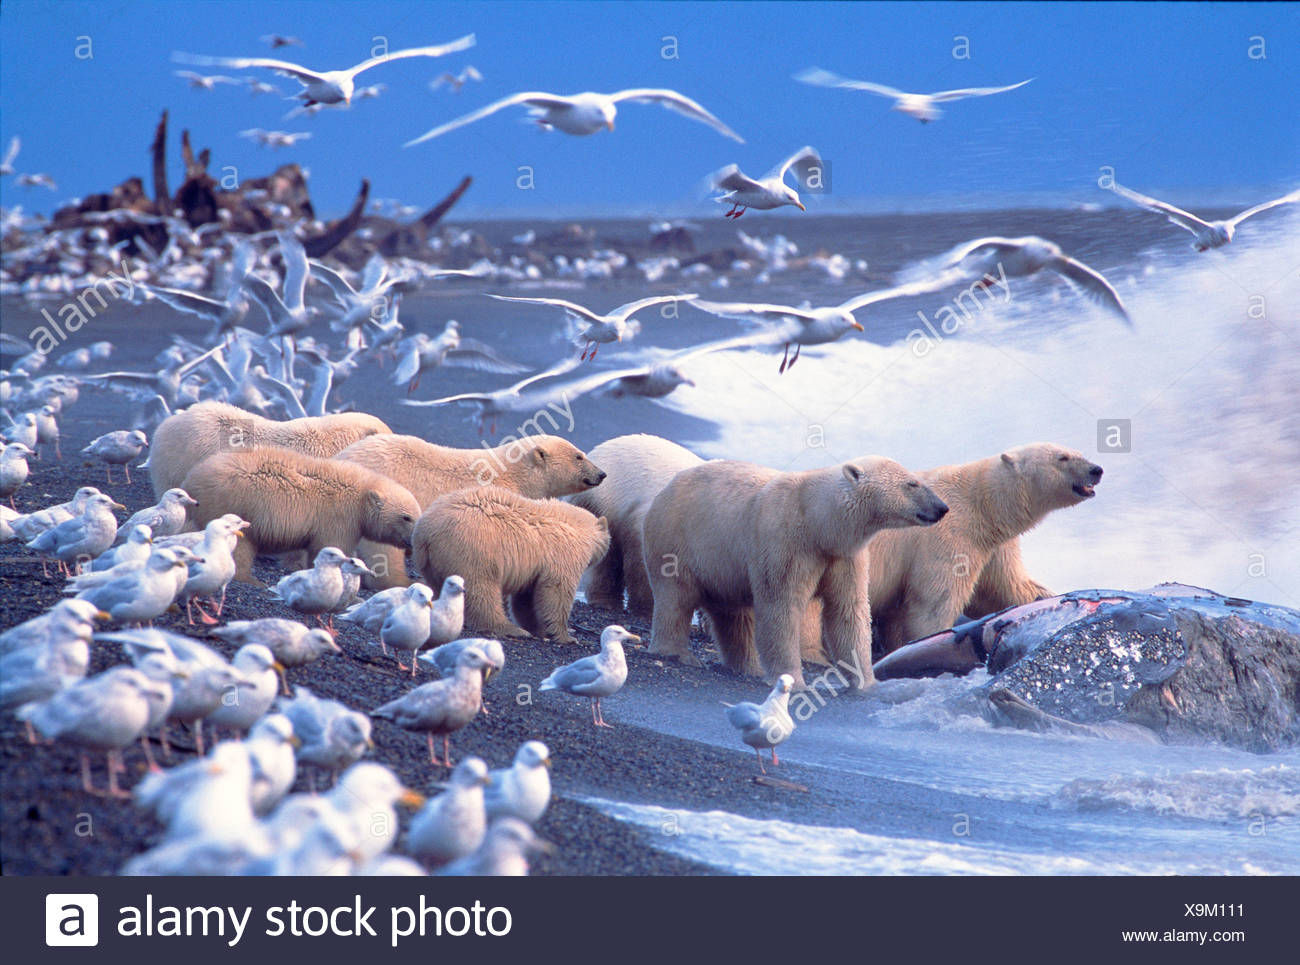 Polar Bears (Ursus maritimus) gather around Gray Whale Carcass, surrounded by Glaucous Gulls. North Slope, Alaska. - Stock Image